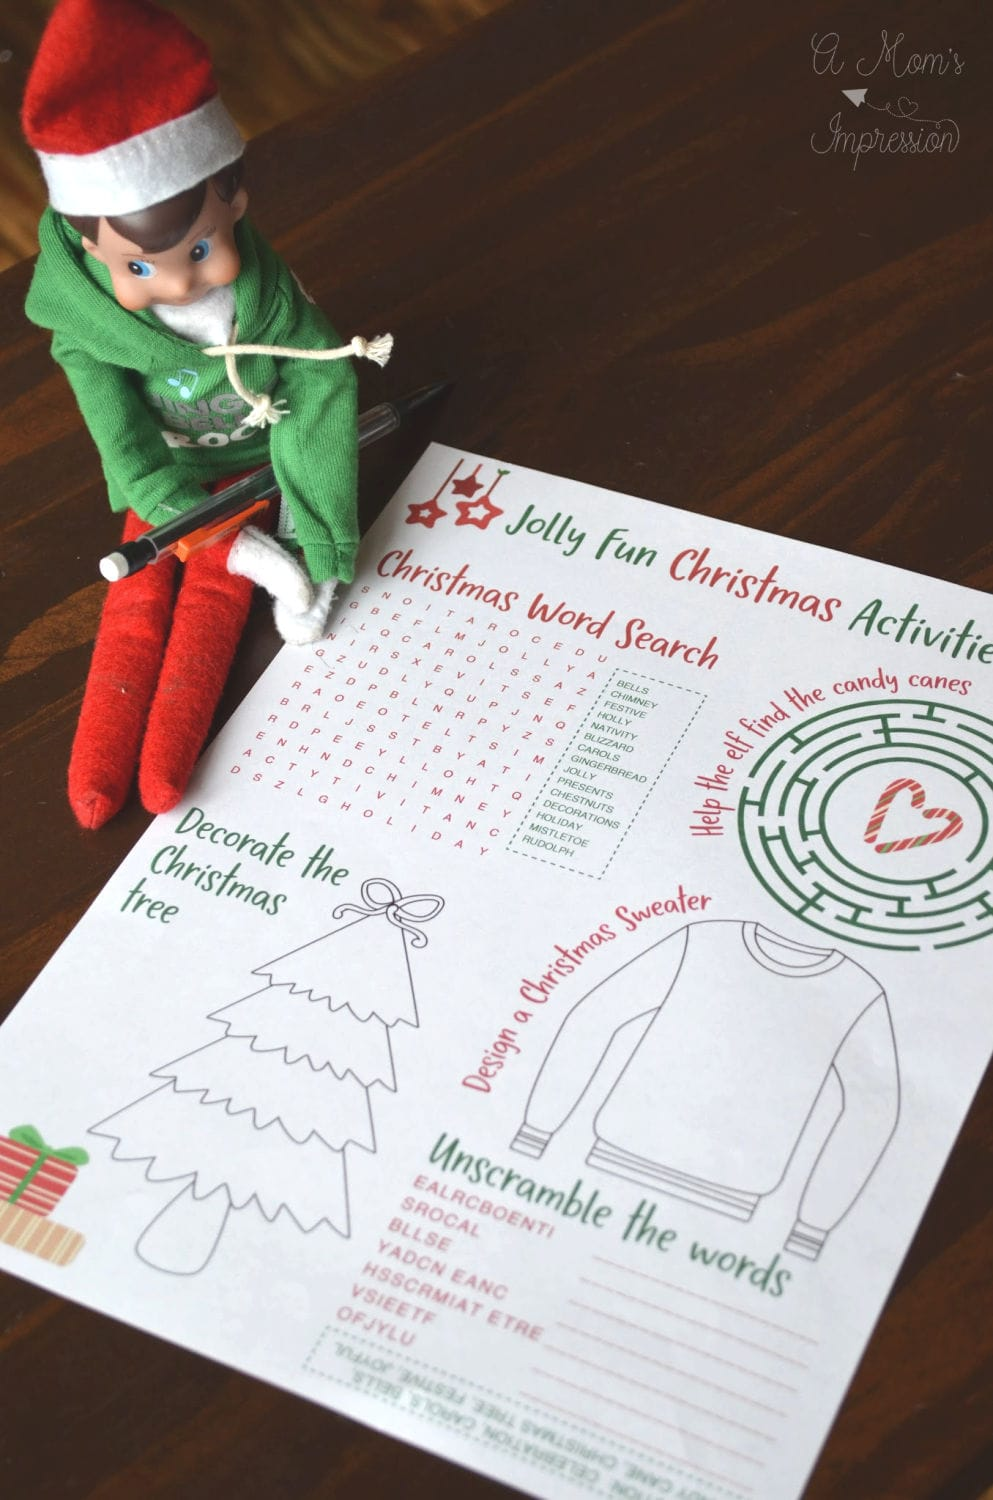 Christmas Elf activities